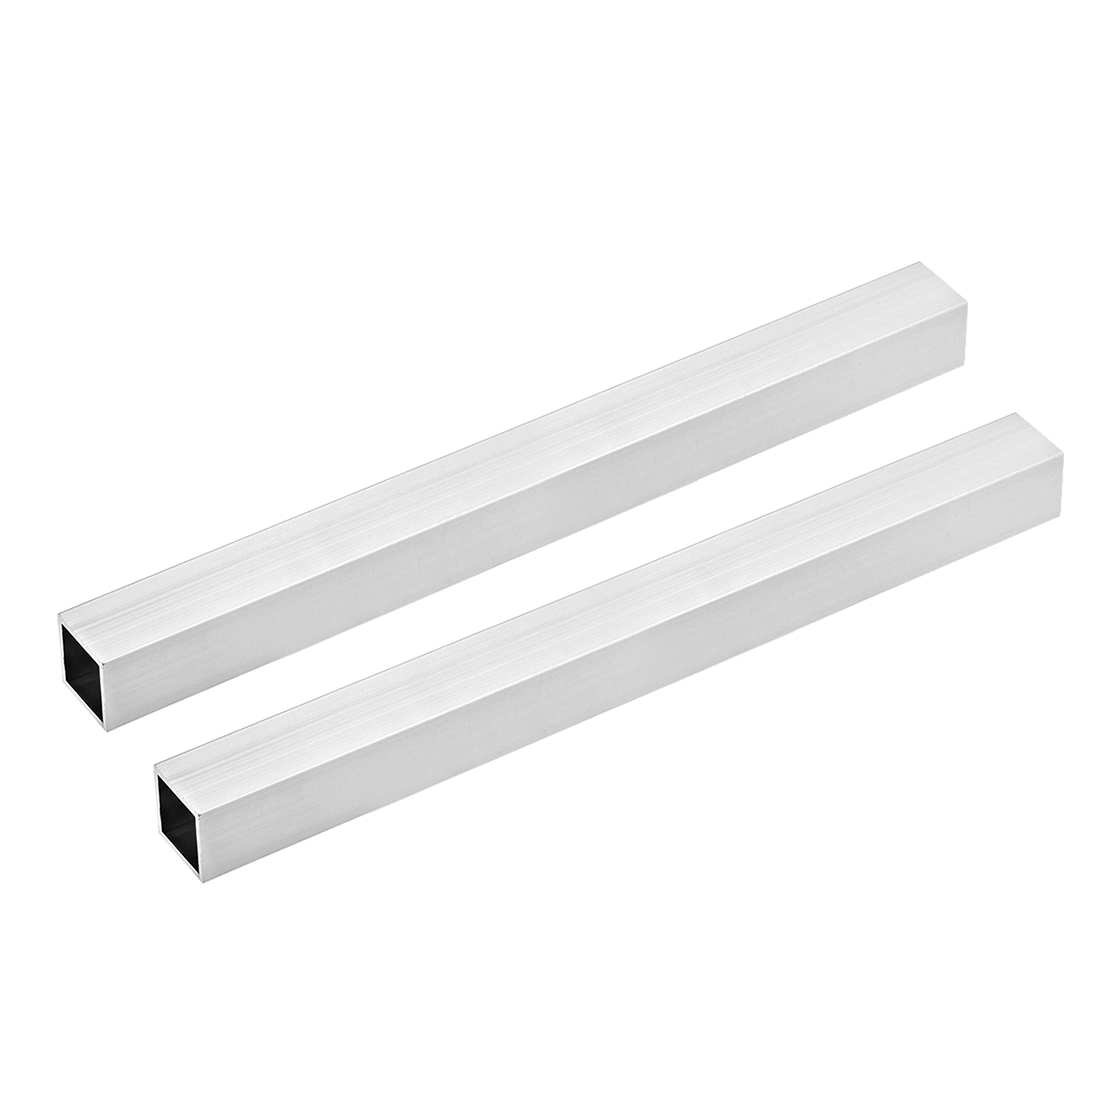 6063 Aluminum Square Tube 25mmx25mmx0.8mm Wall Thickness 300mm Long Tubing 2 Pcs